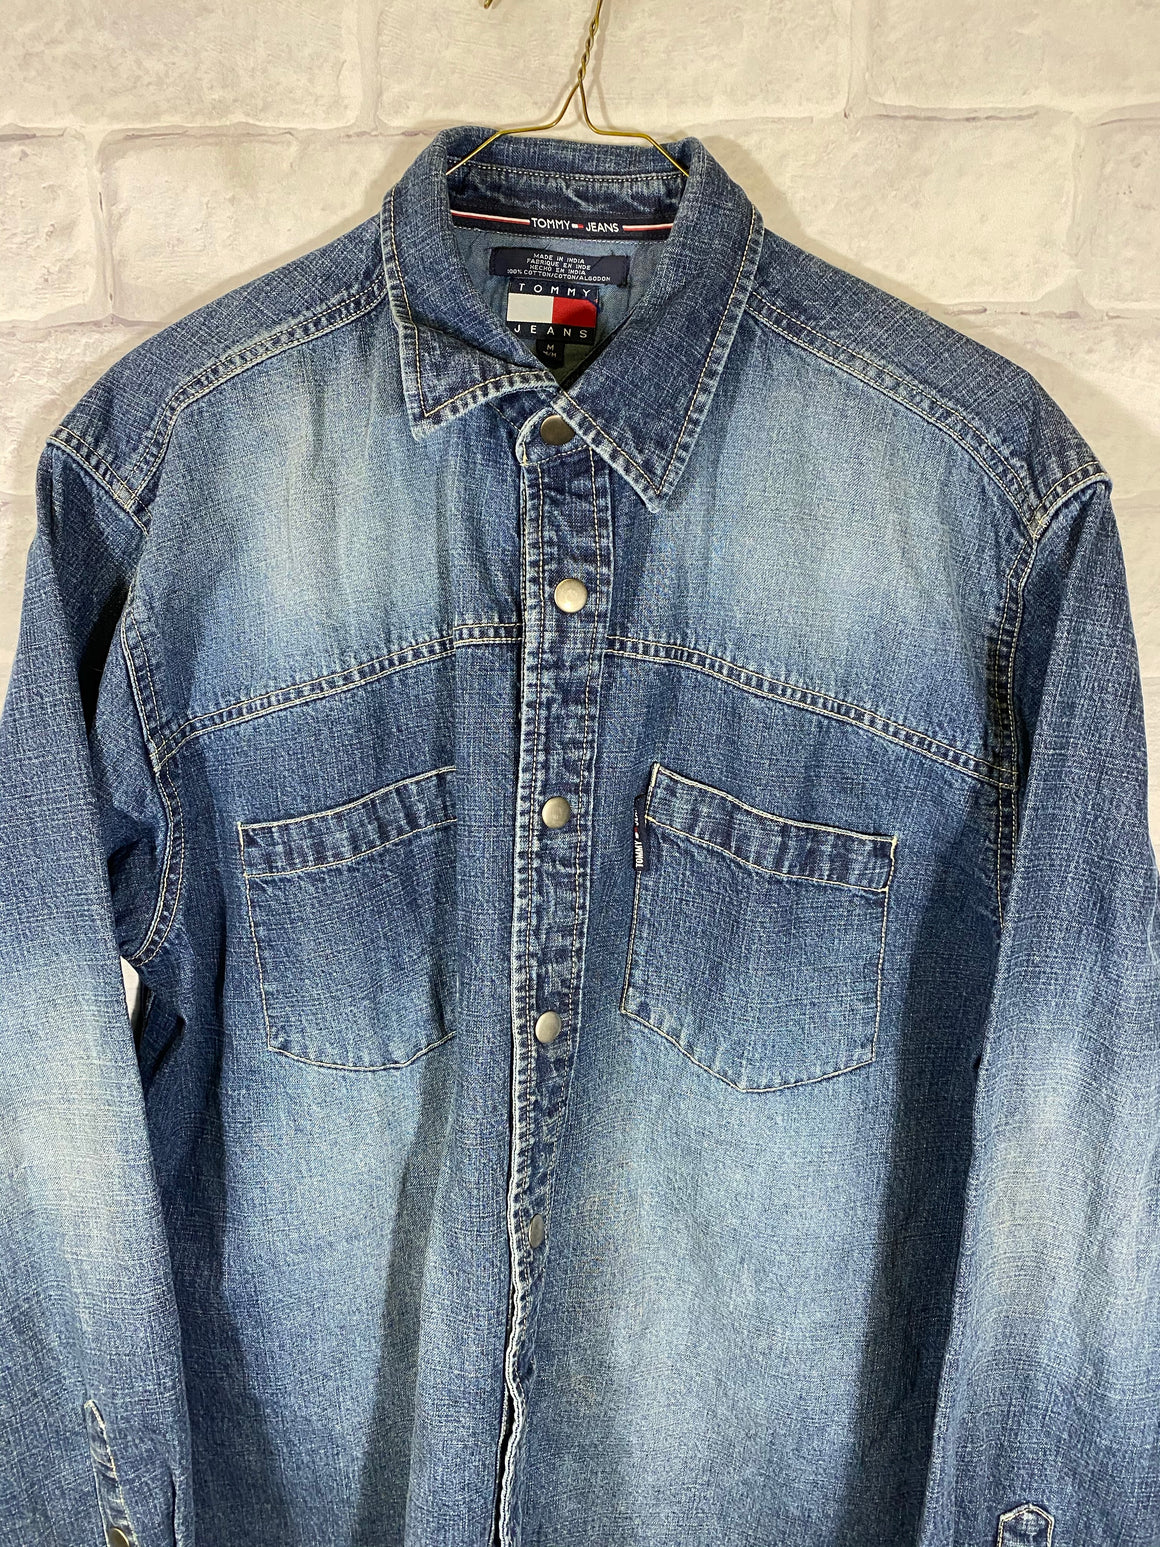 Tommy Hilfiger 90's denim jacket